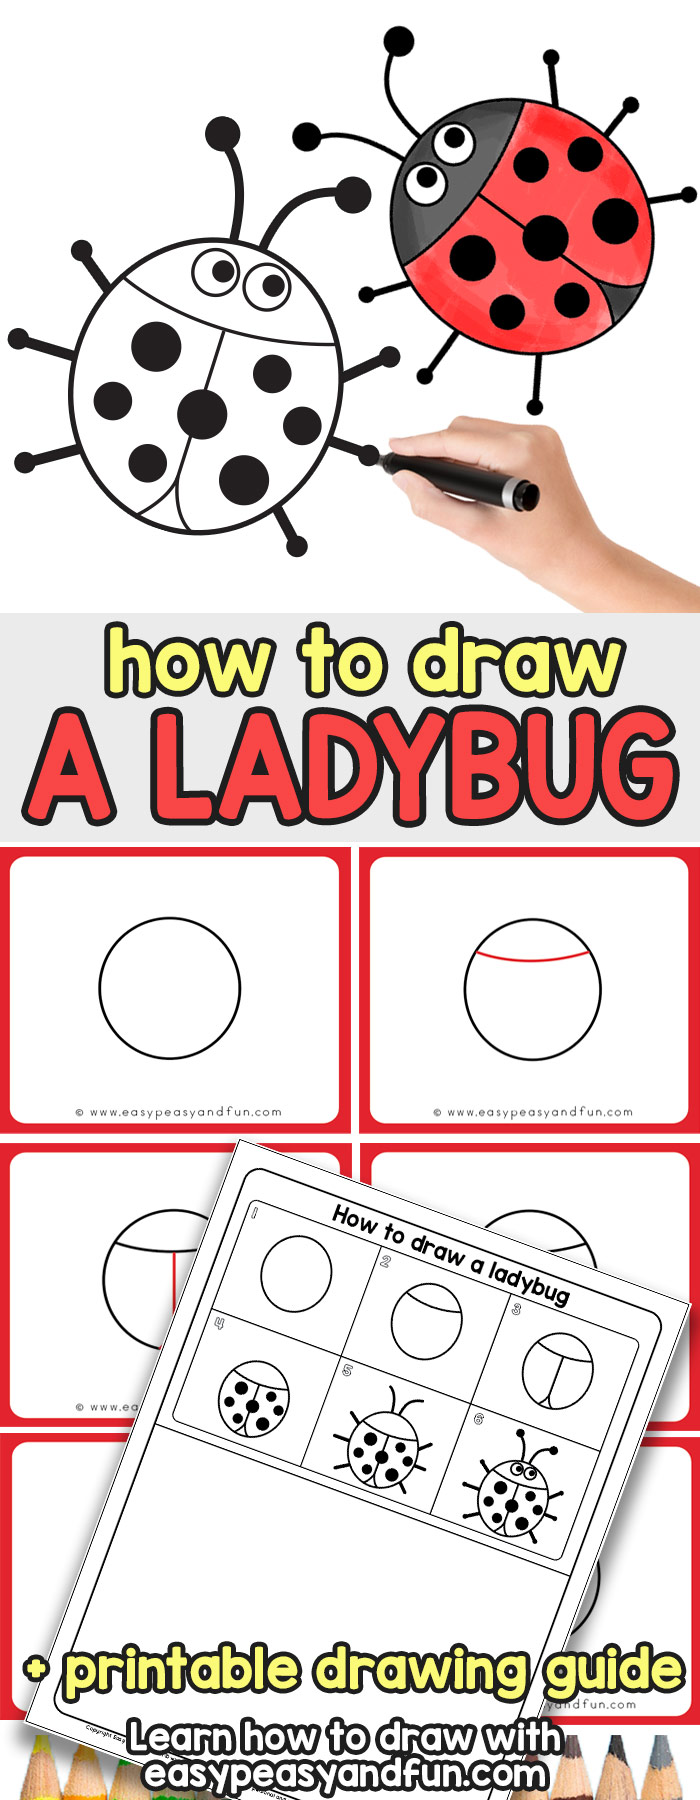 Learn How to Draw a Ladybug - Simple Step by Step Tutorial for Kids